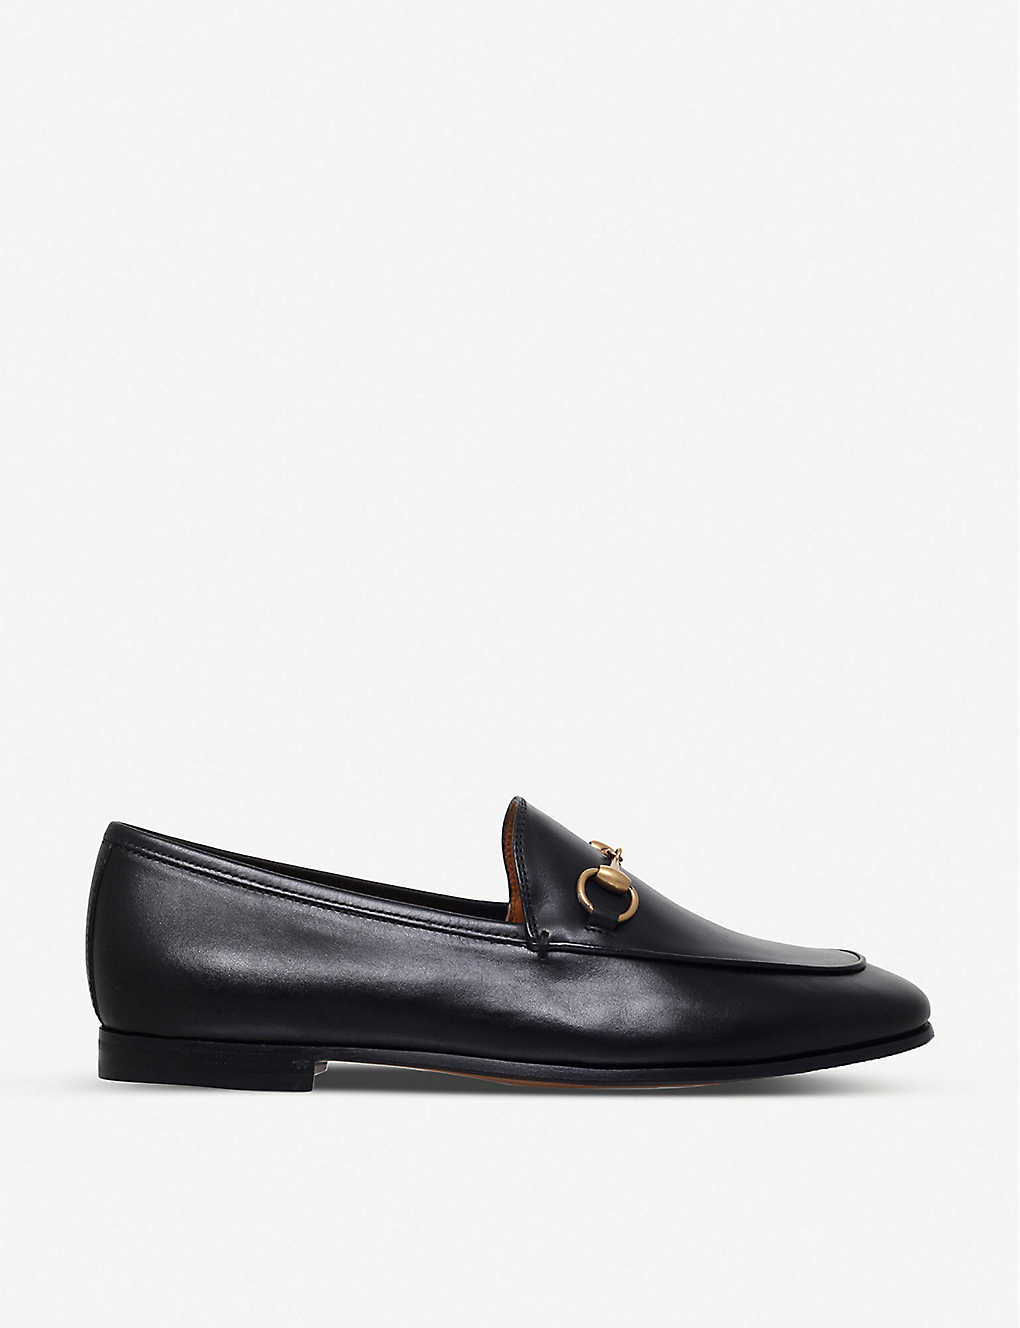 53939e02c76 Jordaan leather loafers - Black ...